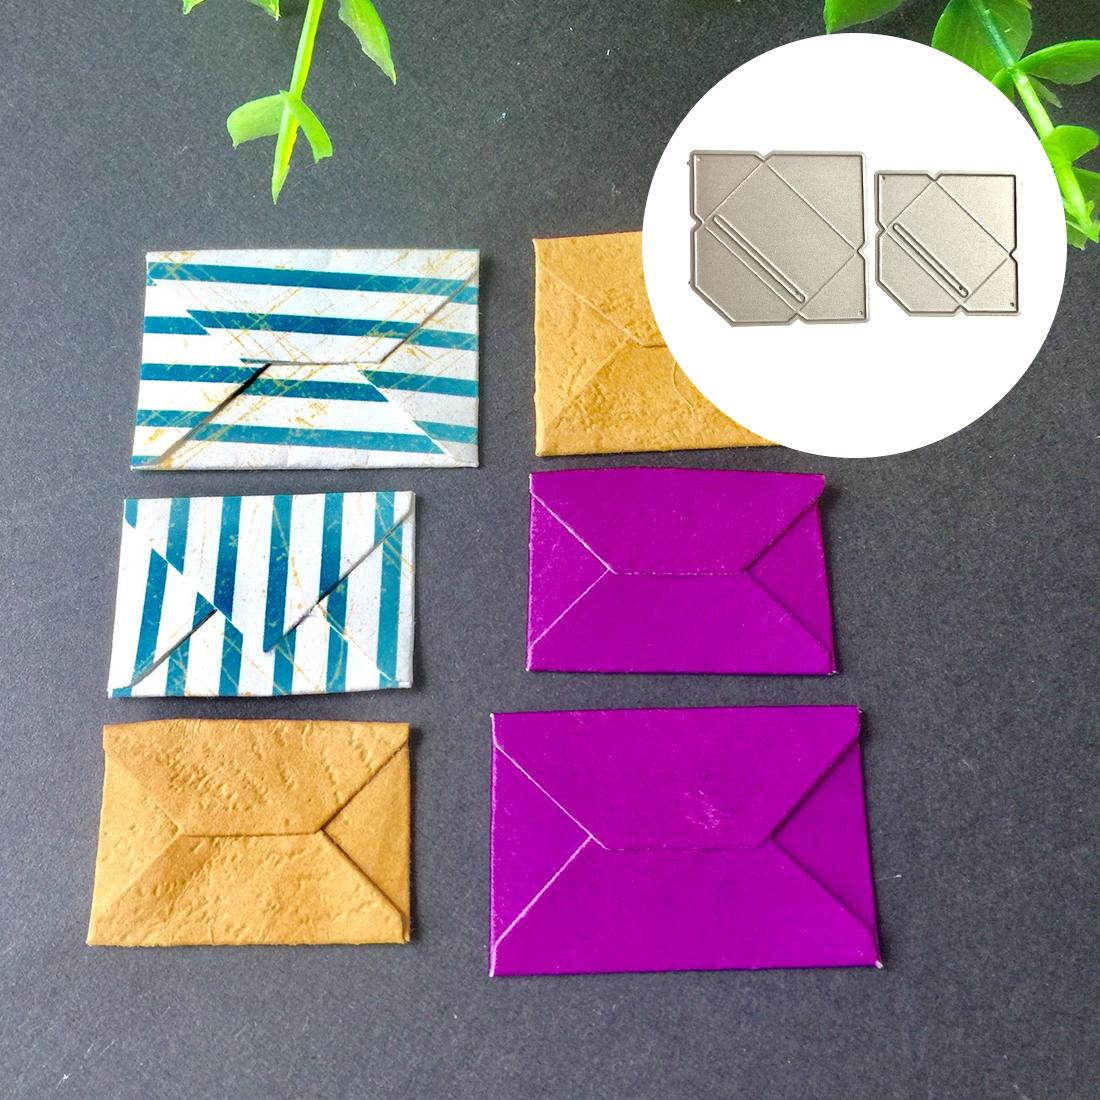 Envelope Metal Die Cuts Cutting Dies for DIY Scrapbooking stitch Embossing Paper Cards Making Decorative Craft Supplies